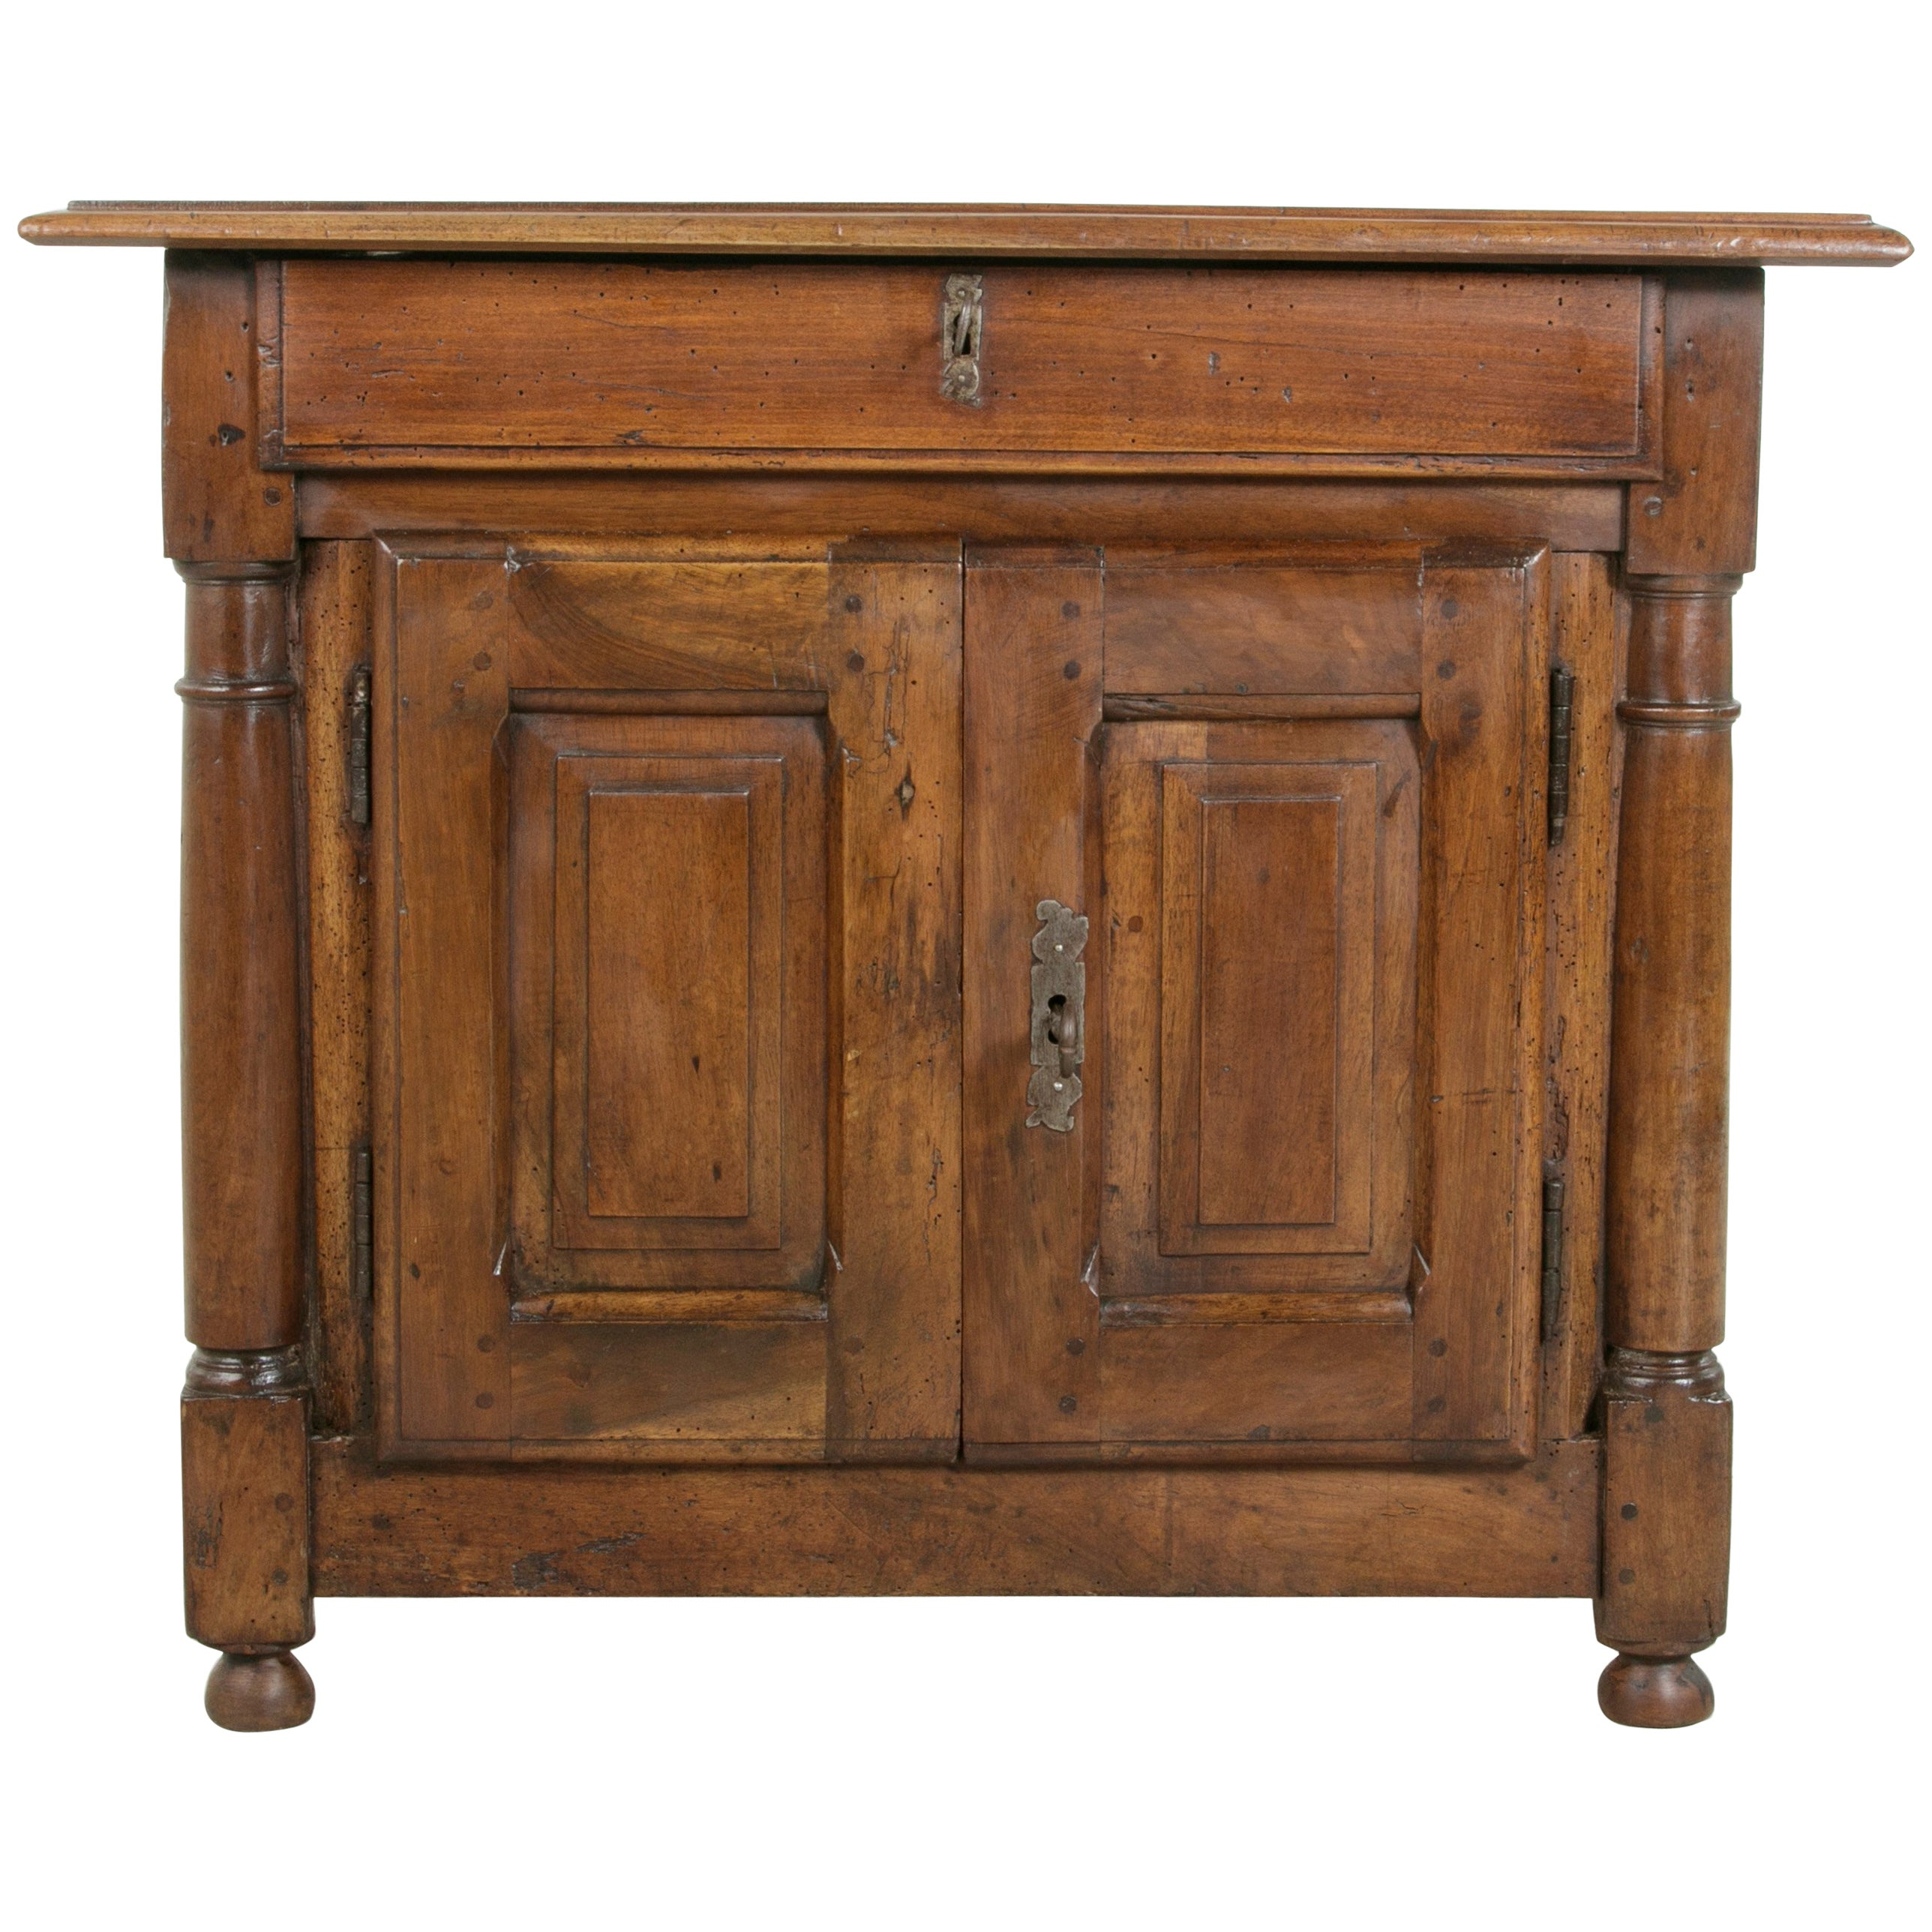 French Empire Period Small Scale Walnut Armoire With Bronze Fittings At